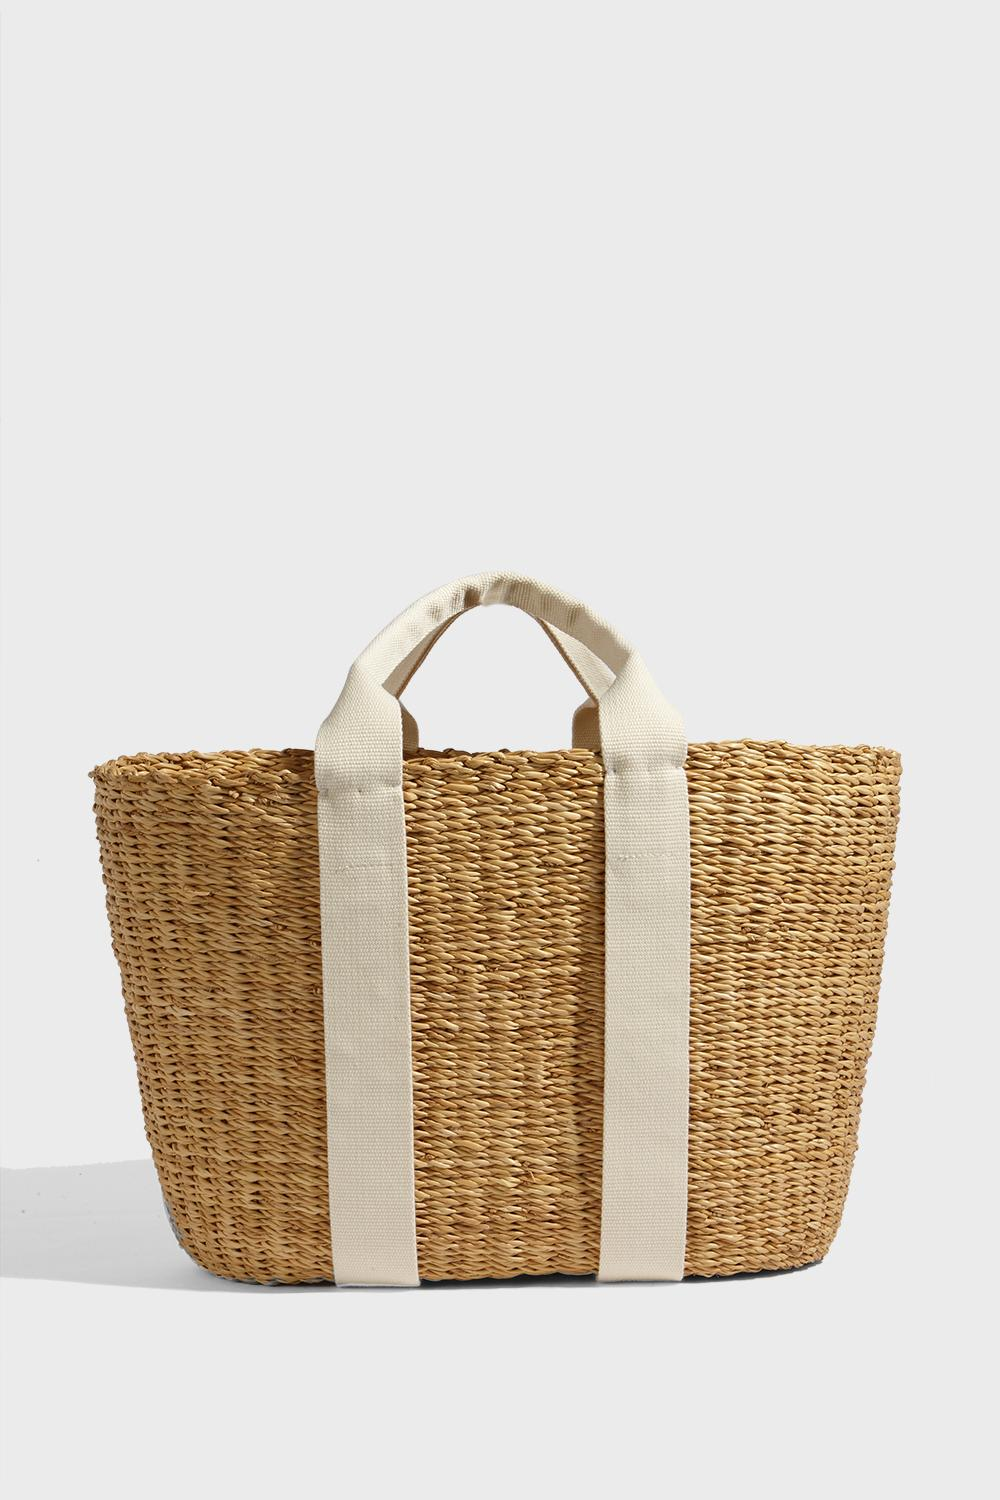 68b56082022bb Muun Caba Hand-Woven Straw Bag In Beige